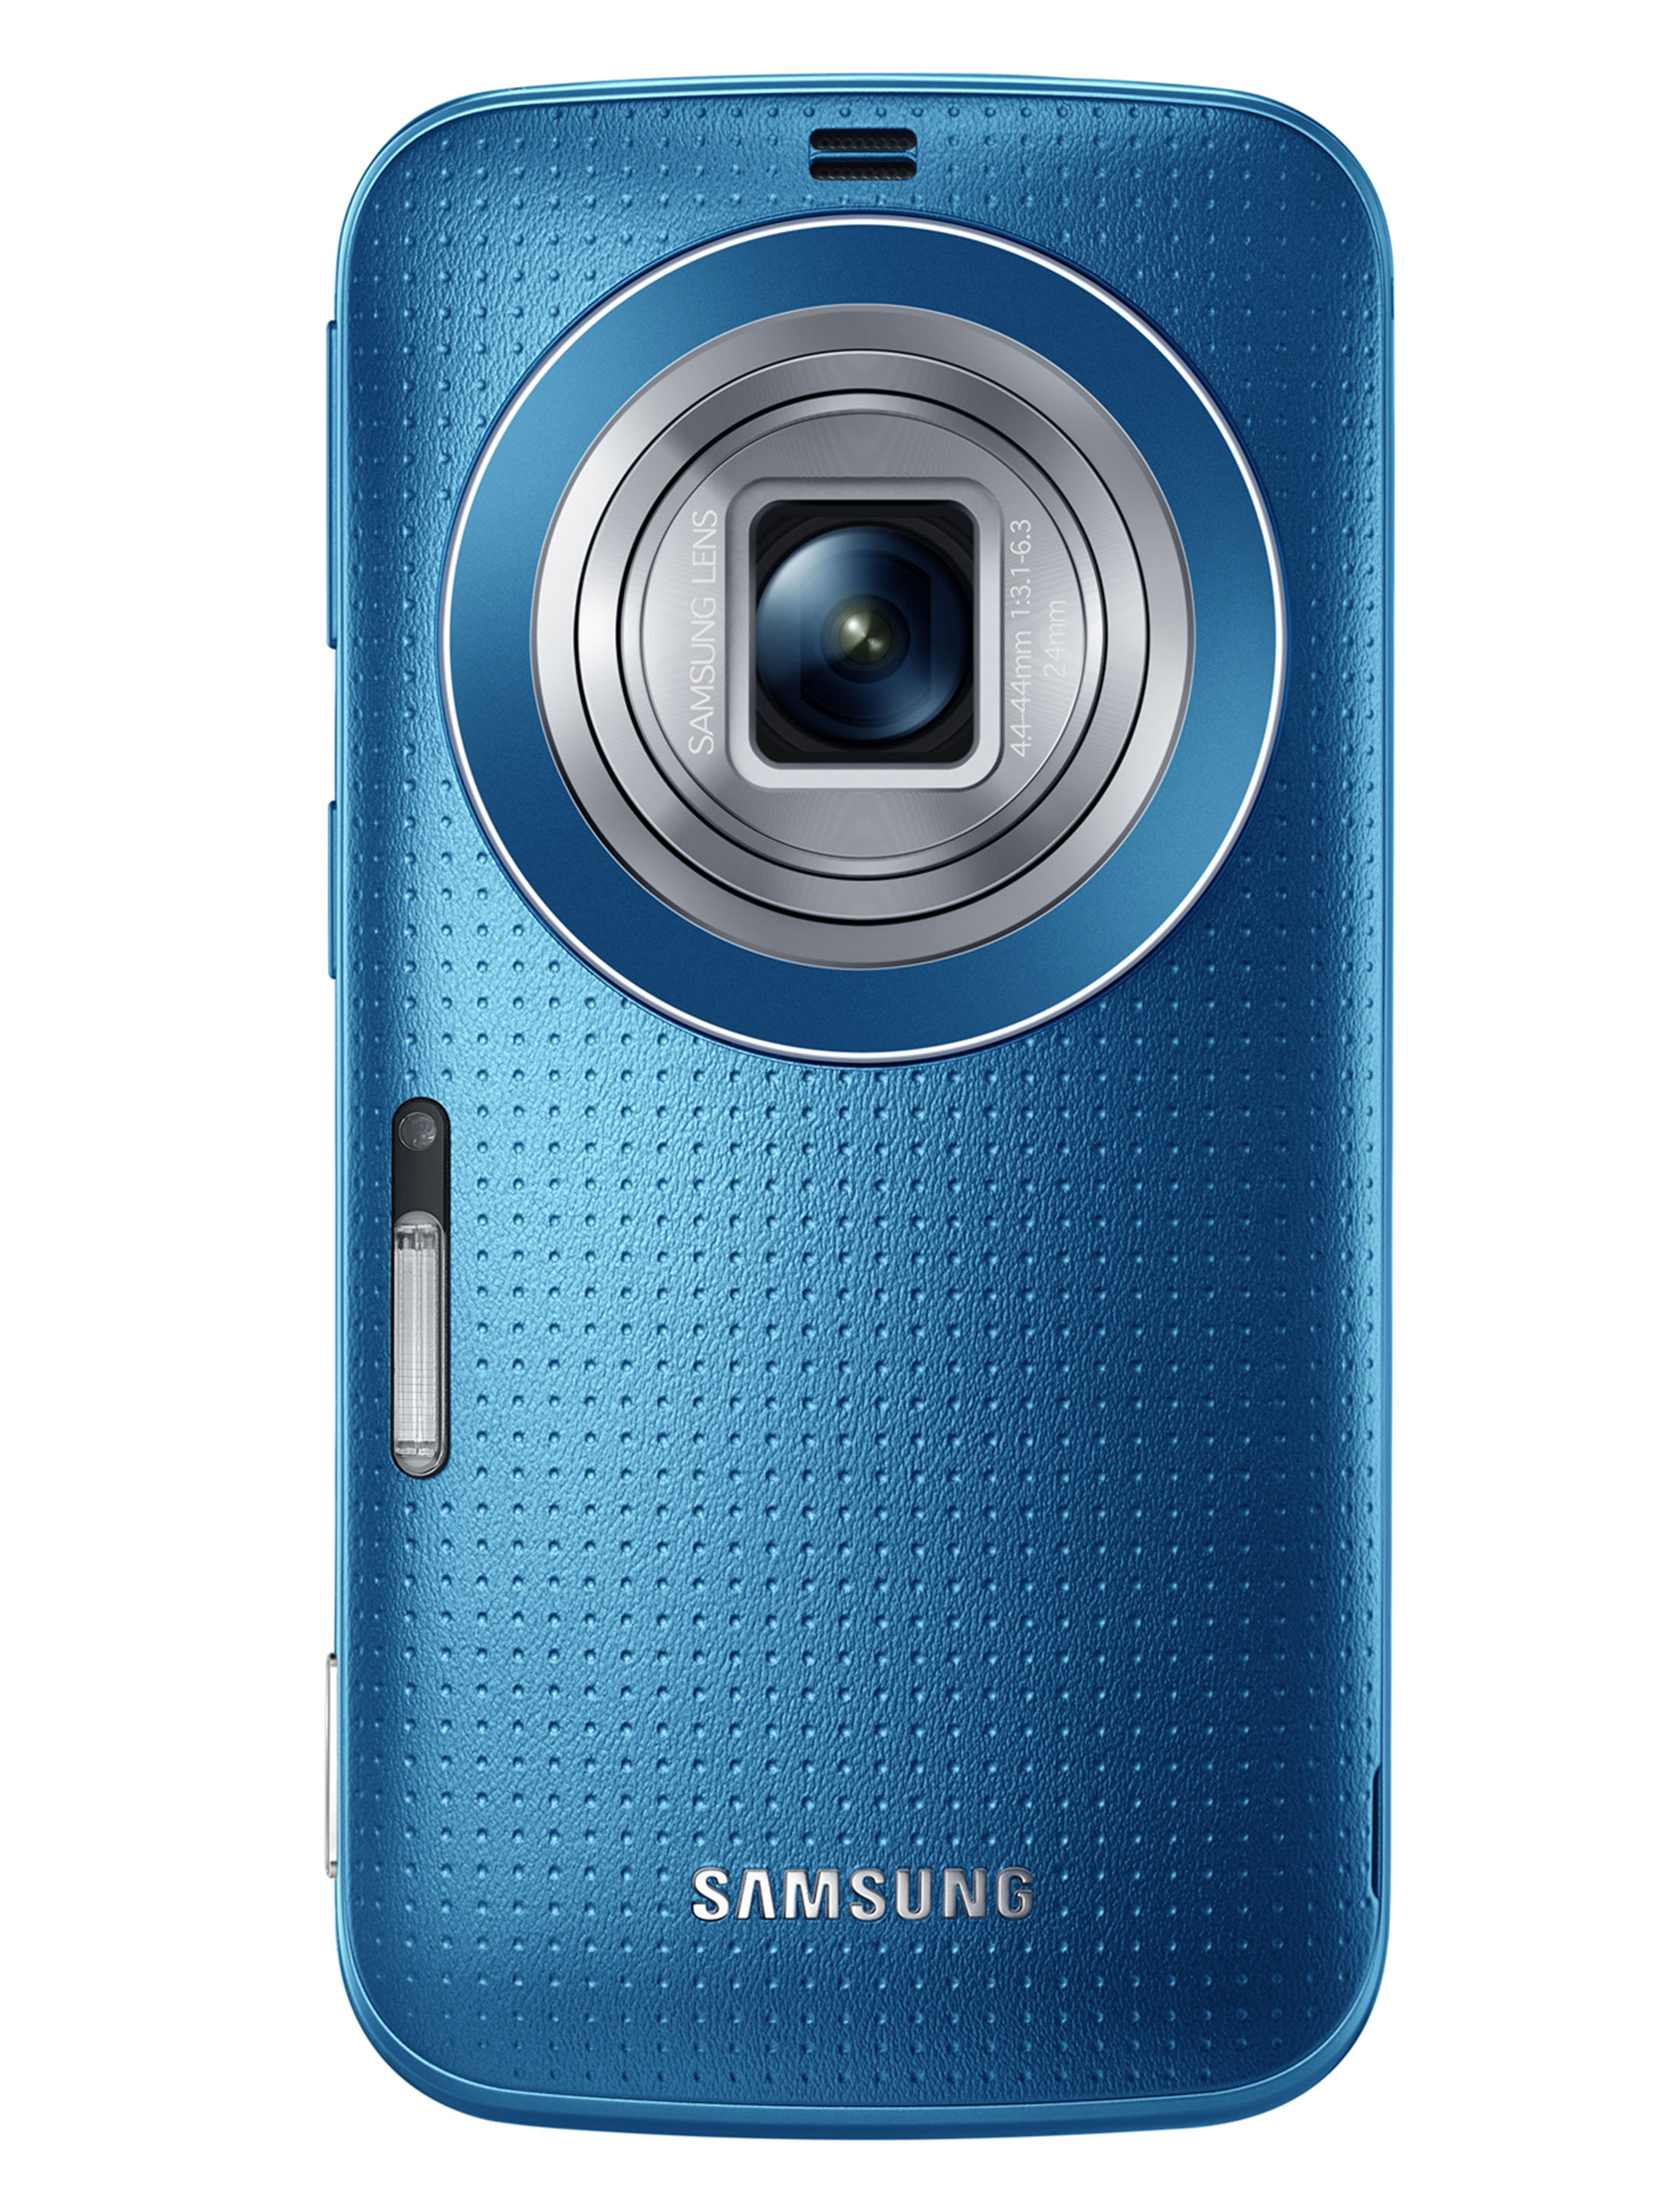 Galaxy K zoom_Electric Blue_02_Lens open